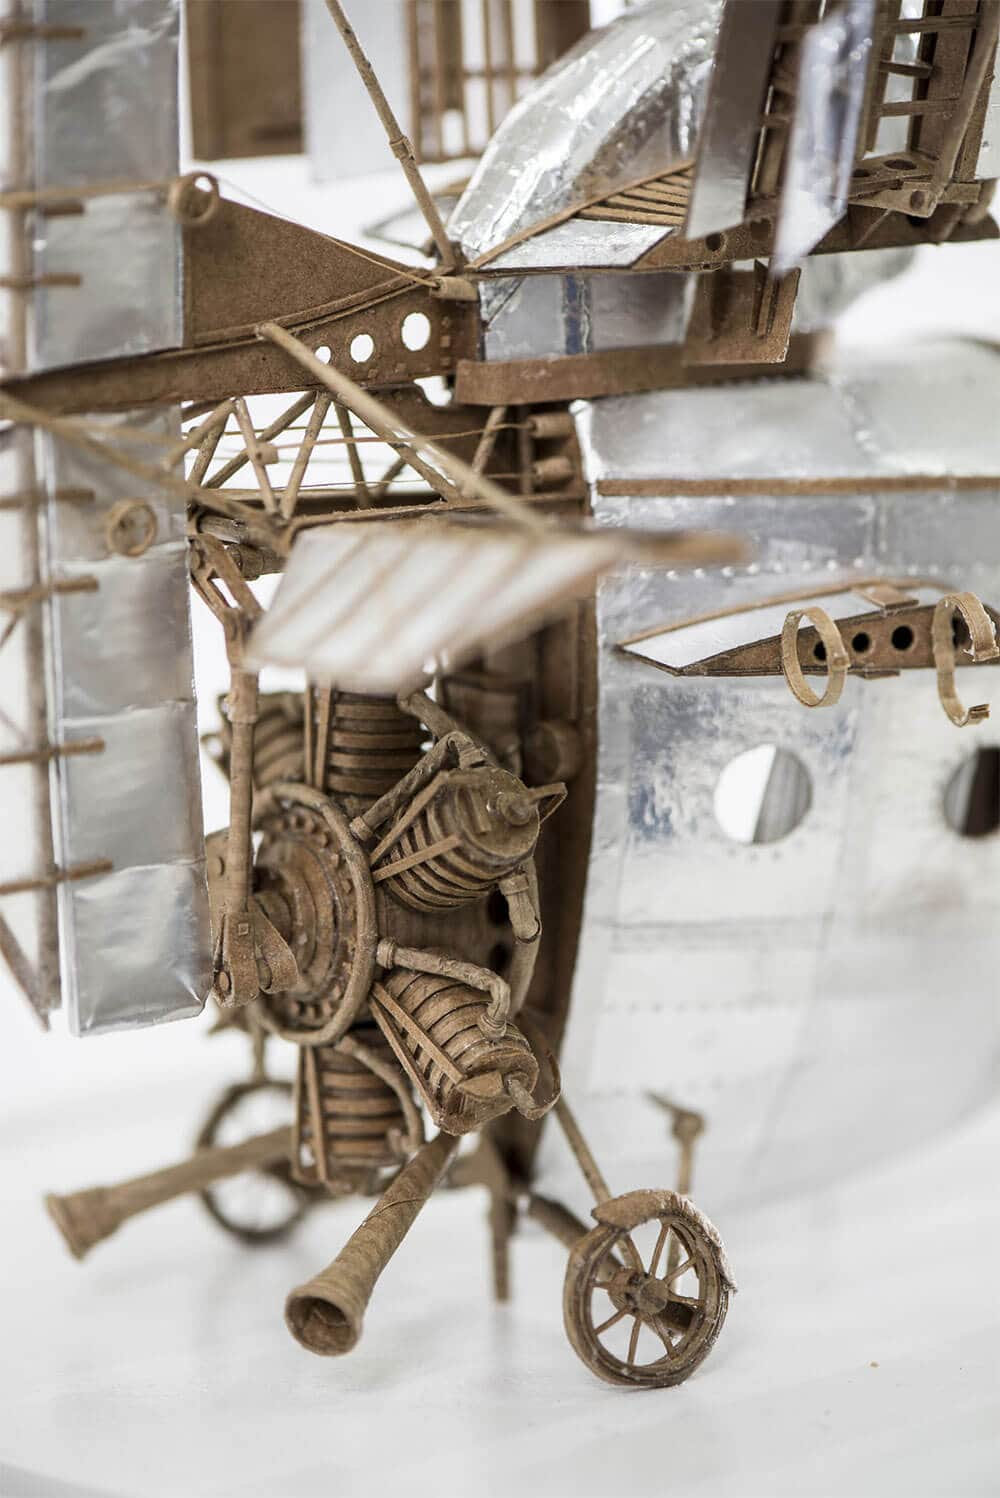 Tiny Sculptural Airships Crafted from Cardboard by Jeroen van Kesteren -